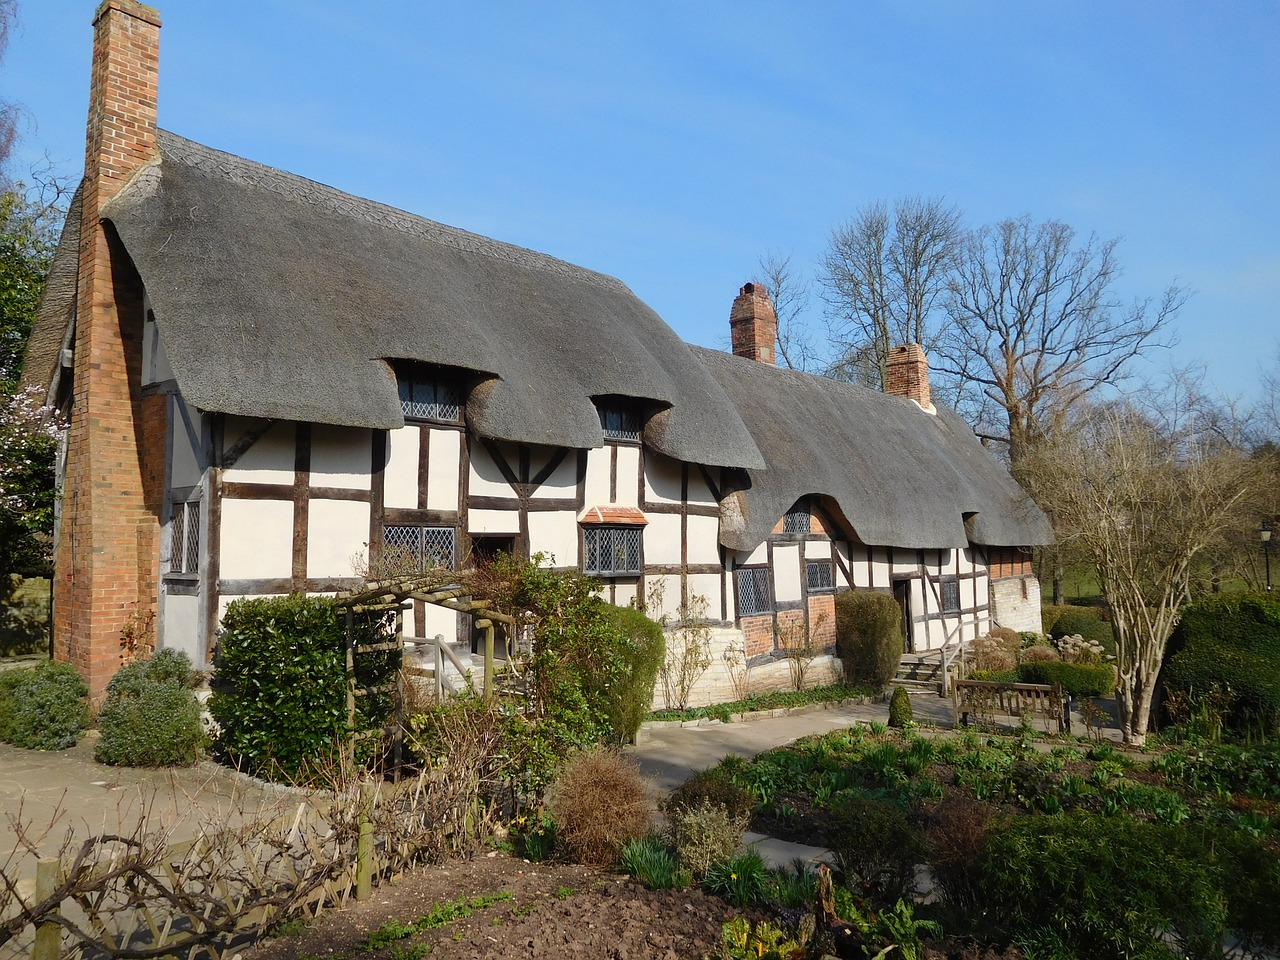 Mary Arden's cottage, Stratford Upon Avon